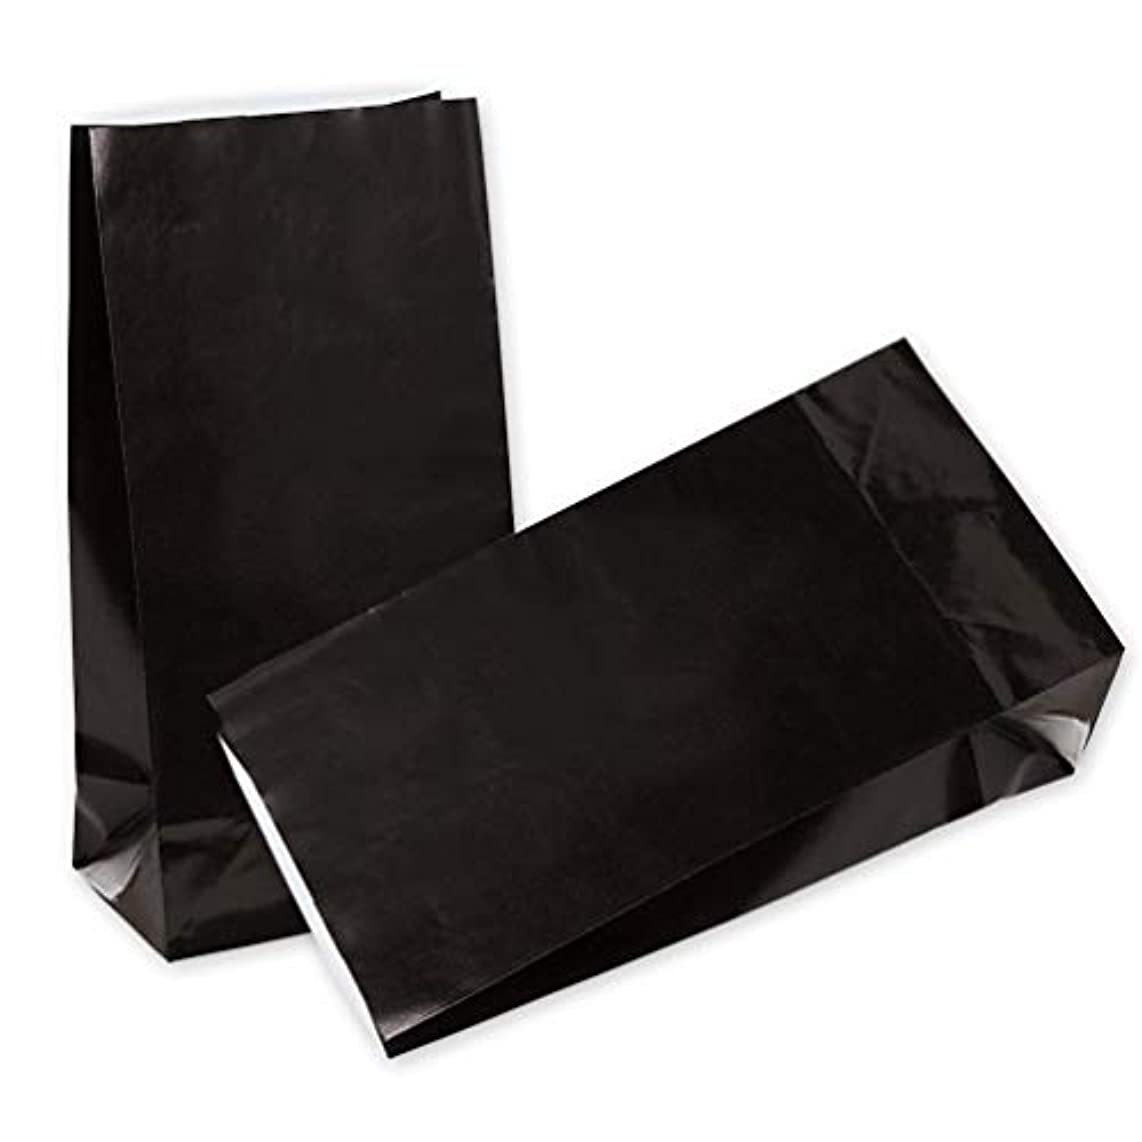 KEYYOOMY Small Paper Bags 24 CT Black Printed Party Favor Bags for Wedding Shower Kid's Birthday Party( 9.4X 5.1x 3.1 in)